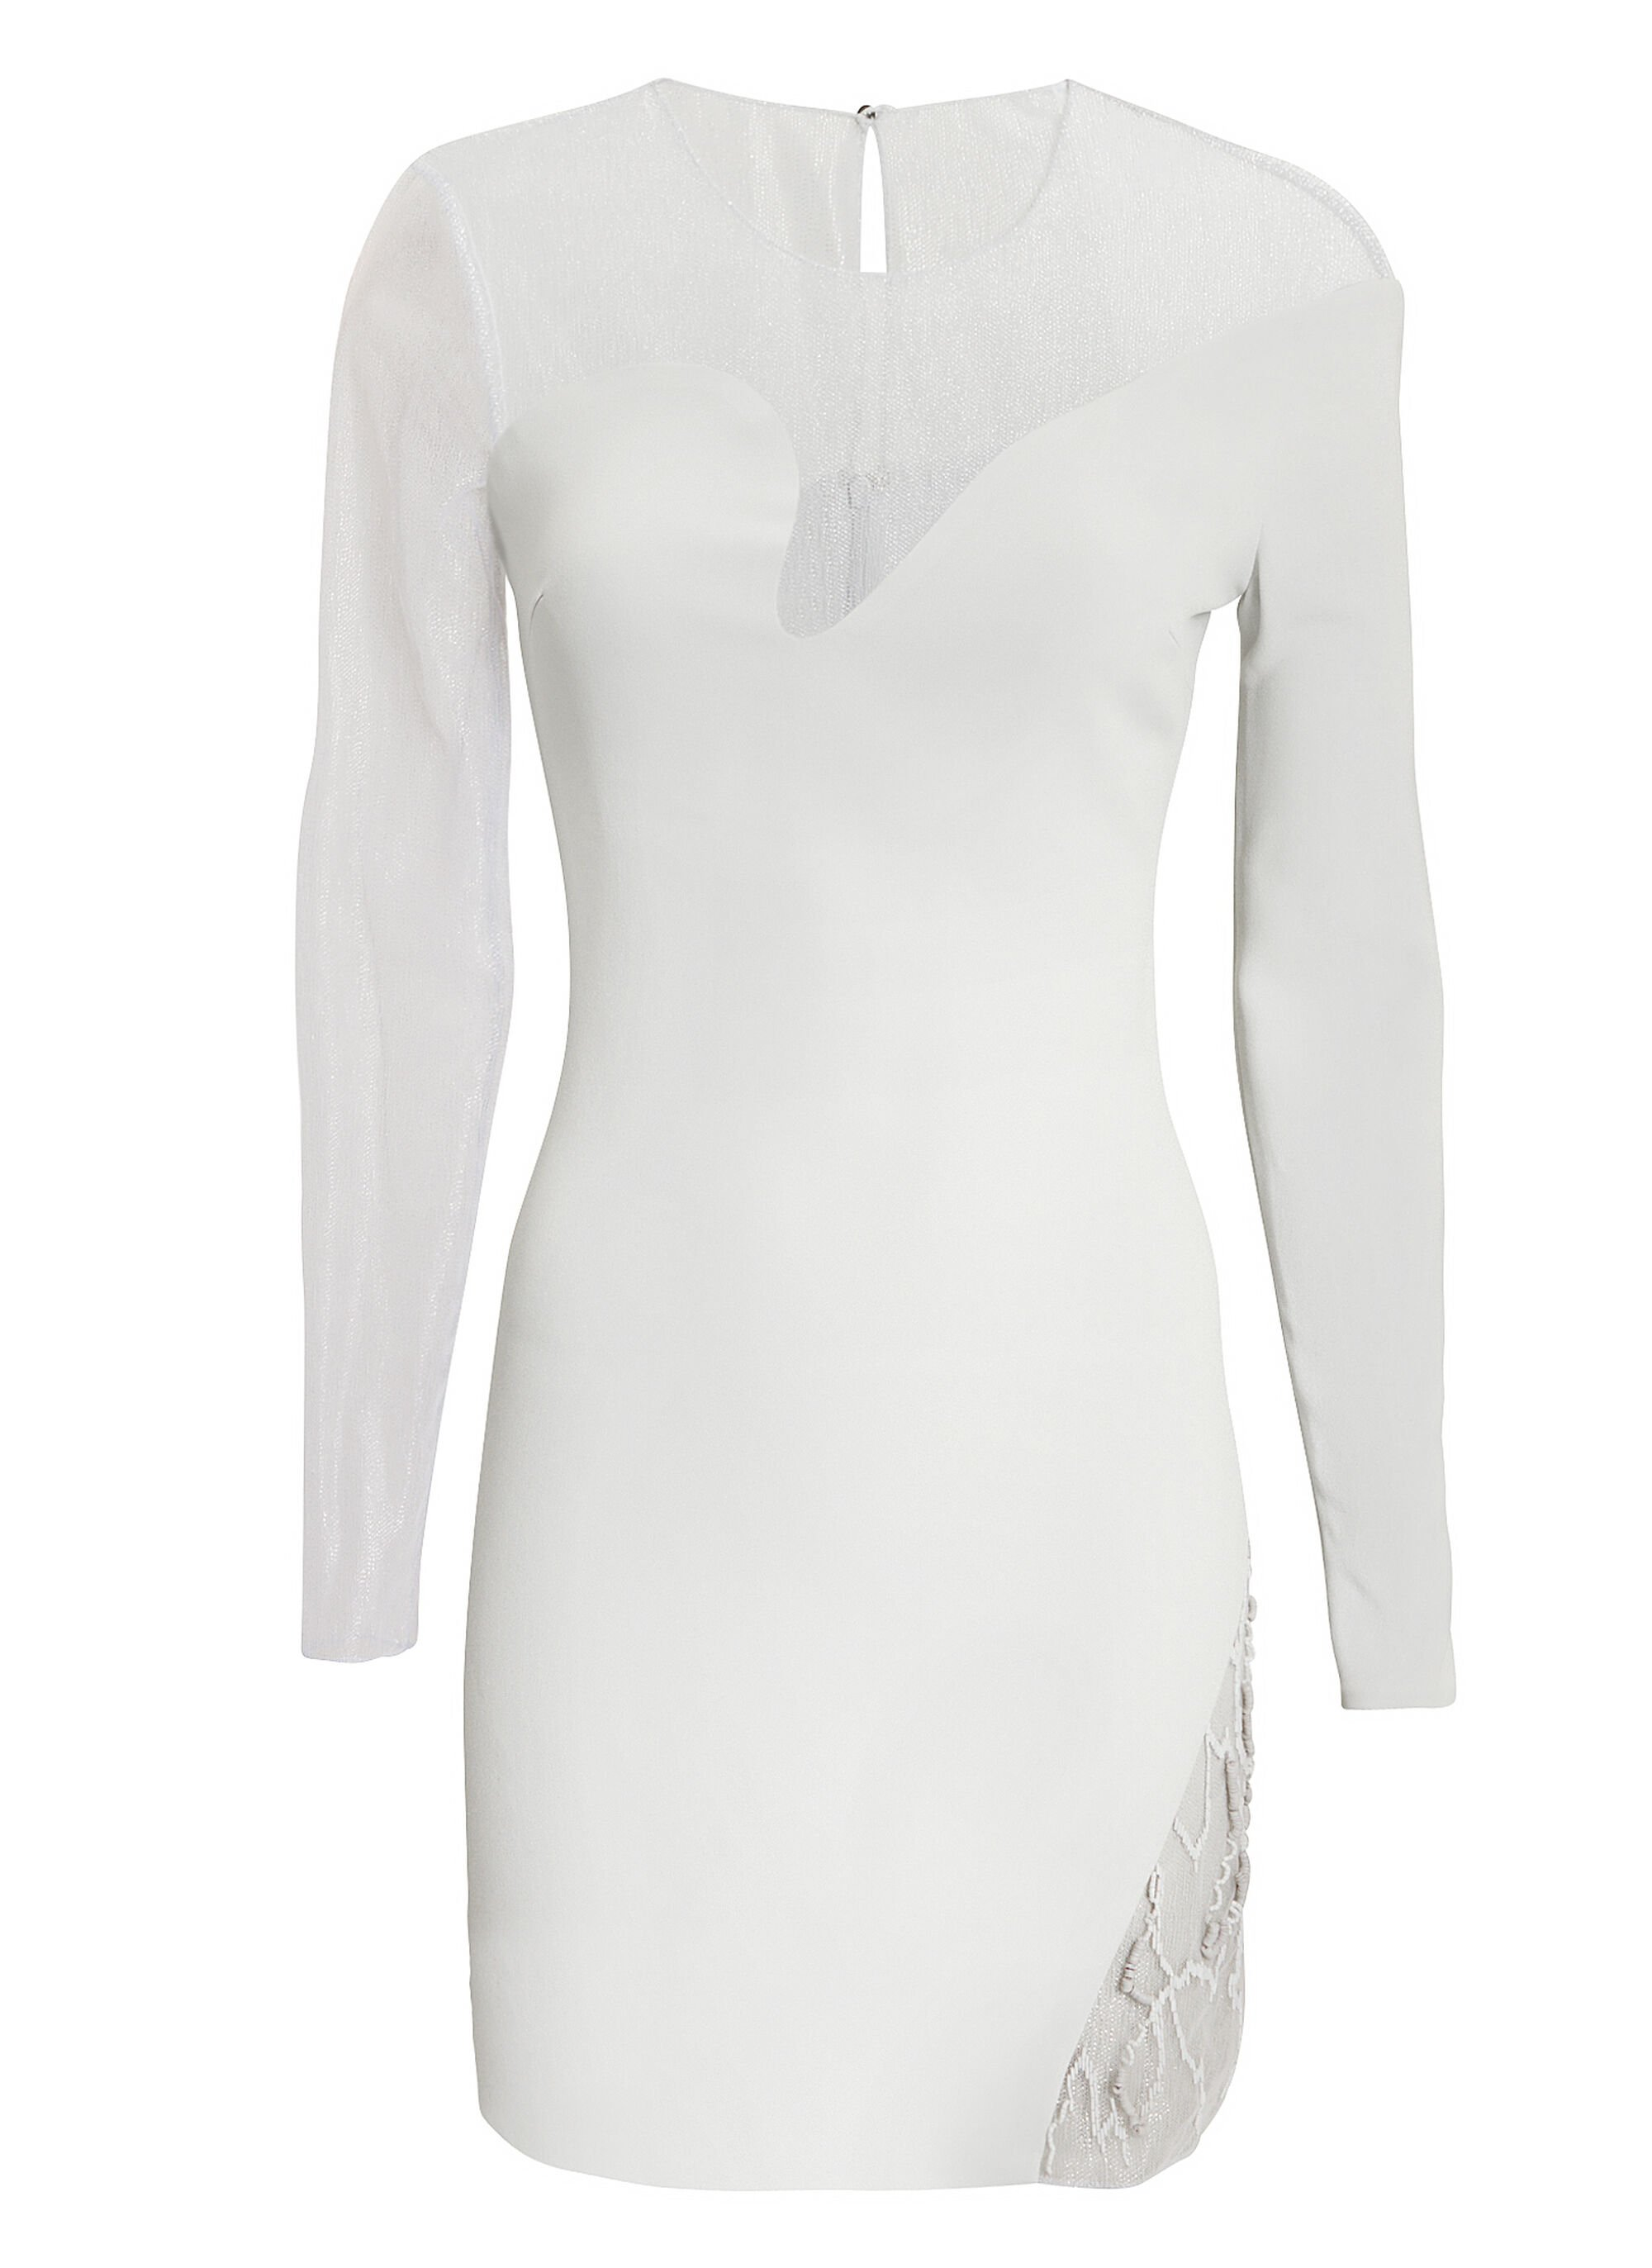 Fragmented Curve Dress, GREY-LT, hi-res